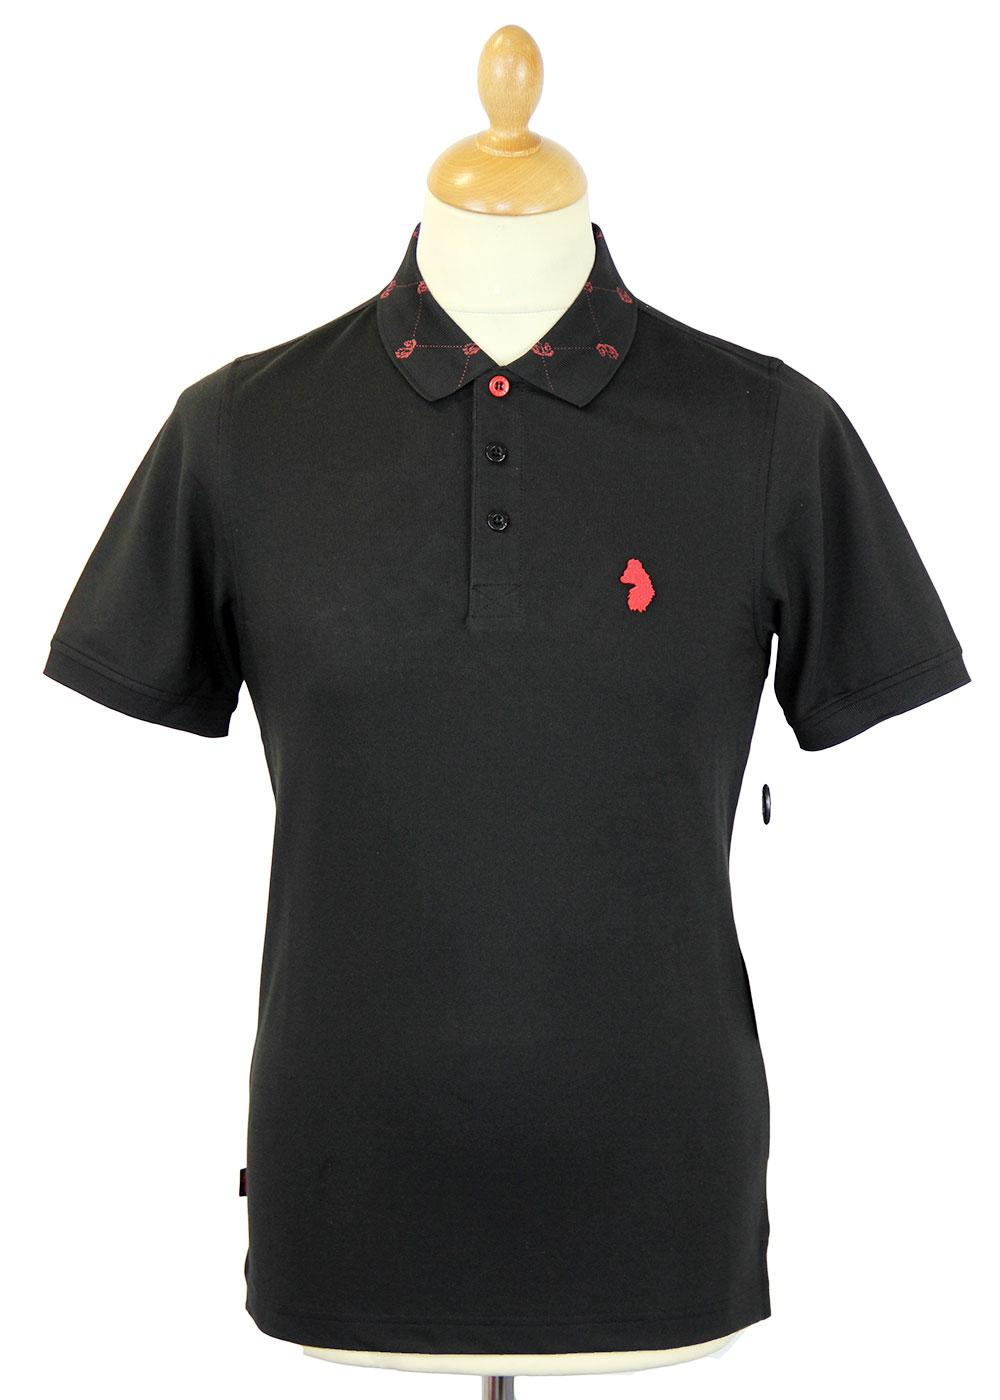 Landscape LUKE 1977 Mod Argyle Lion Collar Polo B